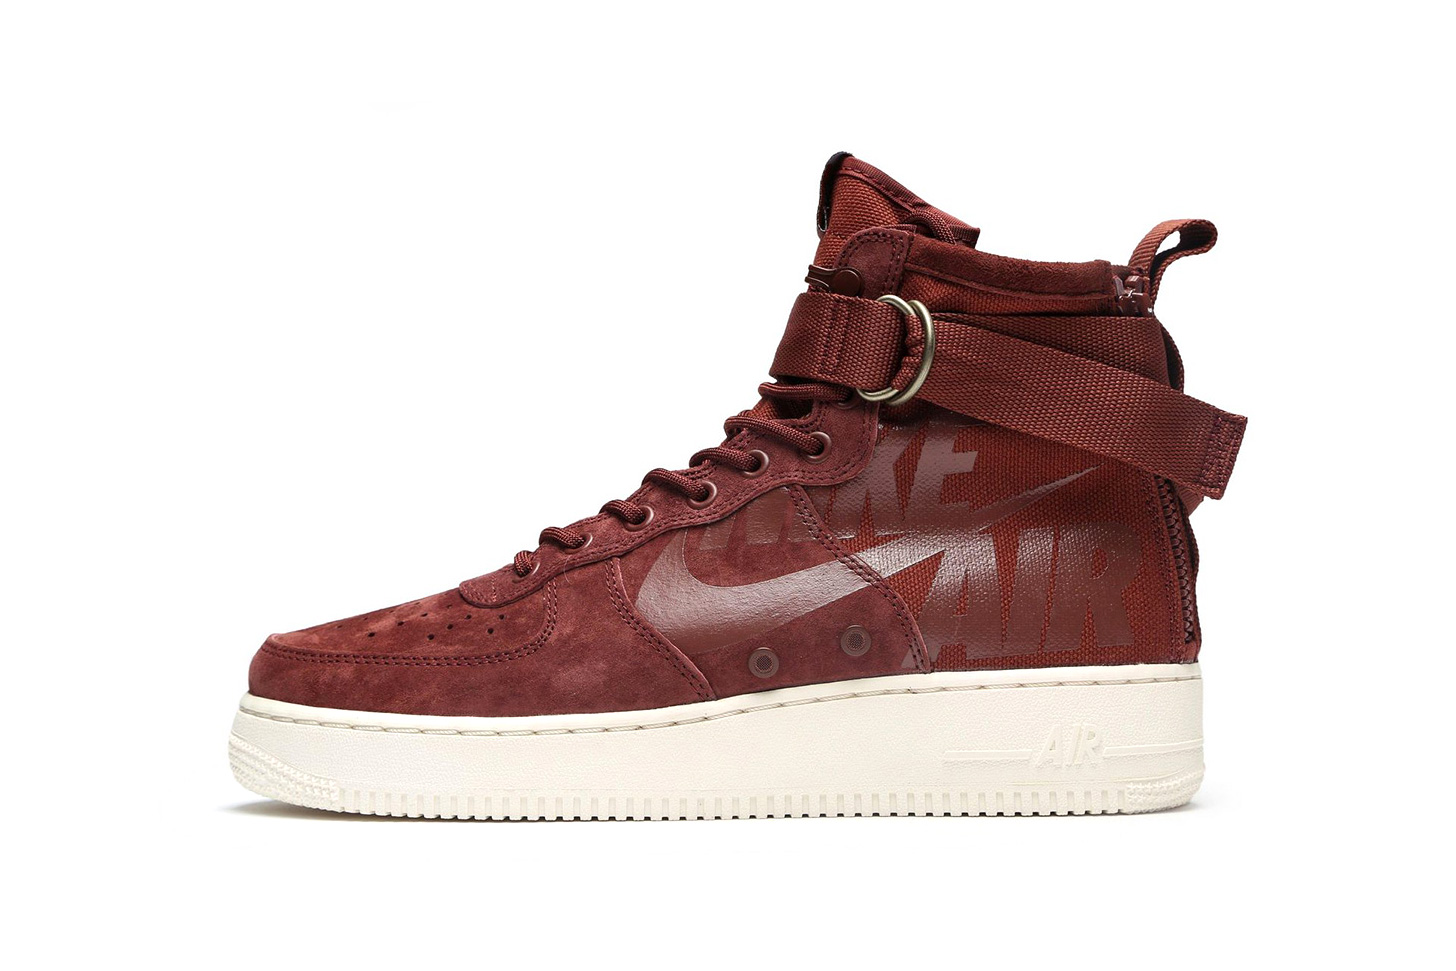 Nike SF-AF1 Mid Burgundy Release info purchase price summer colorway sneaker footwear